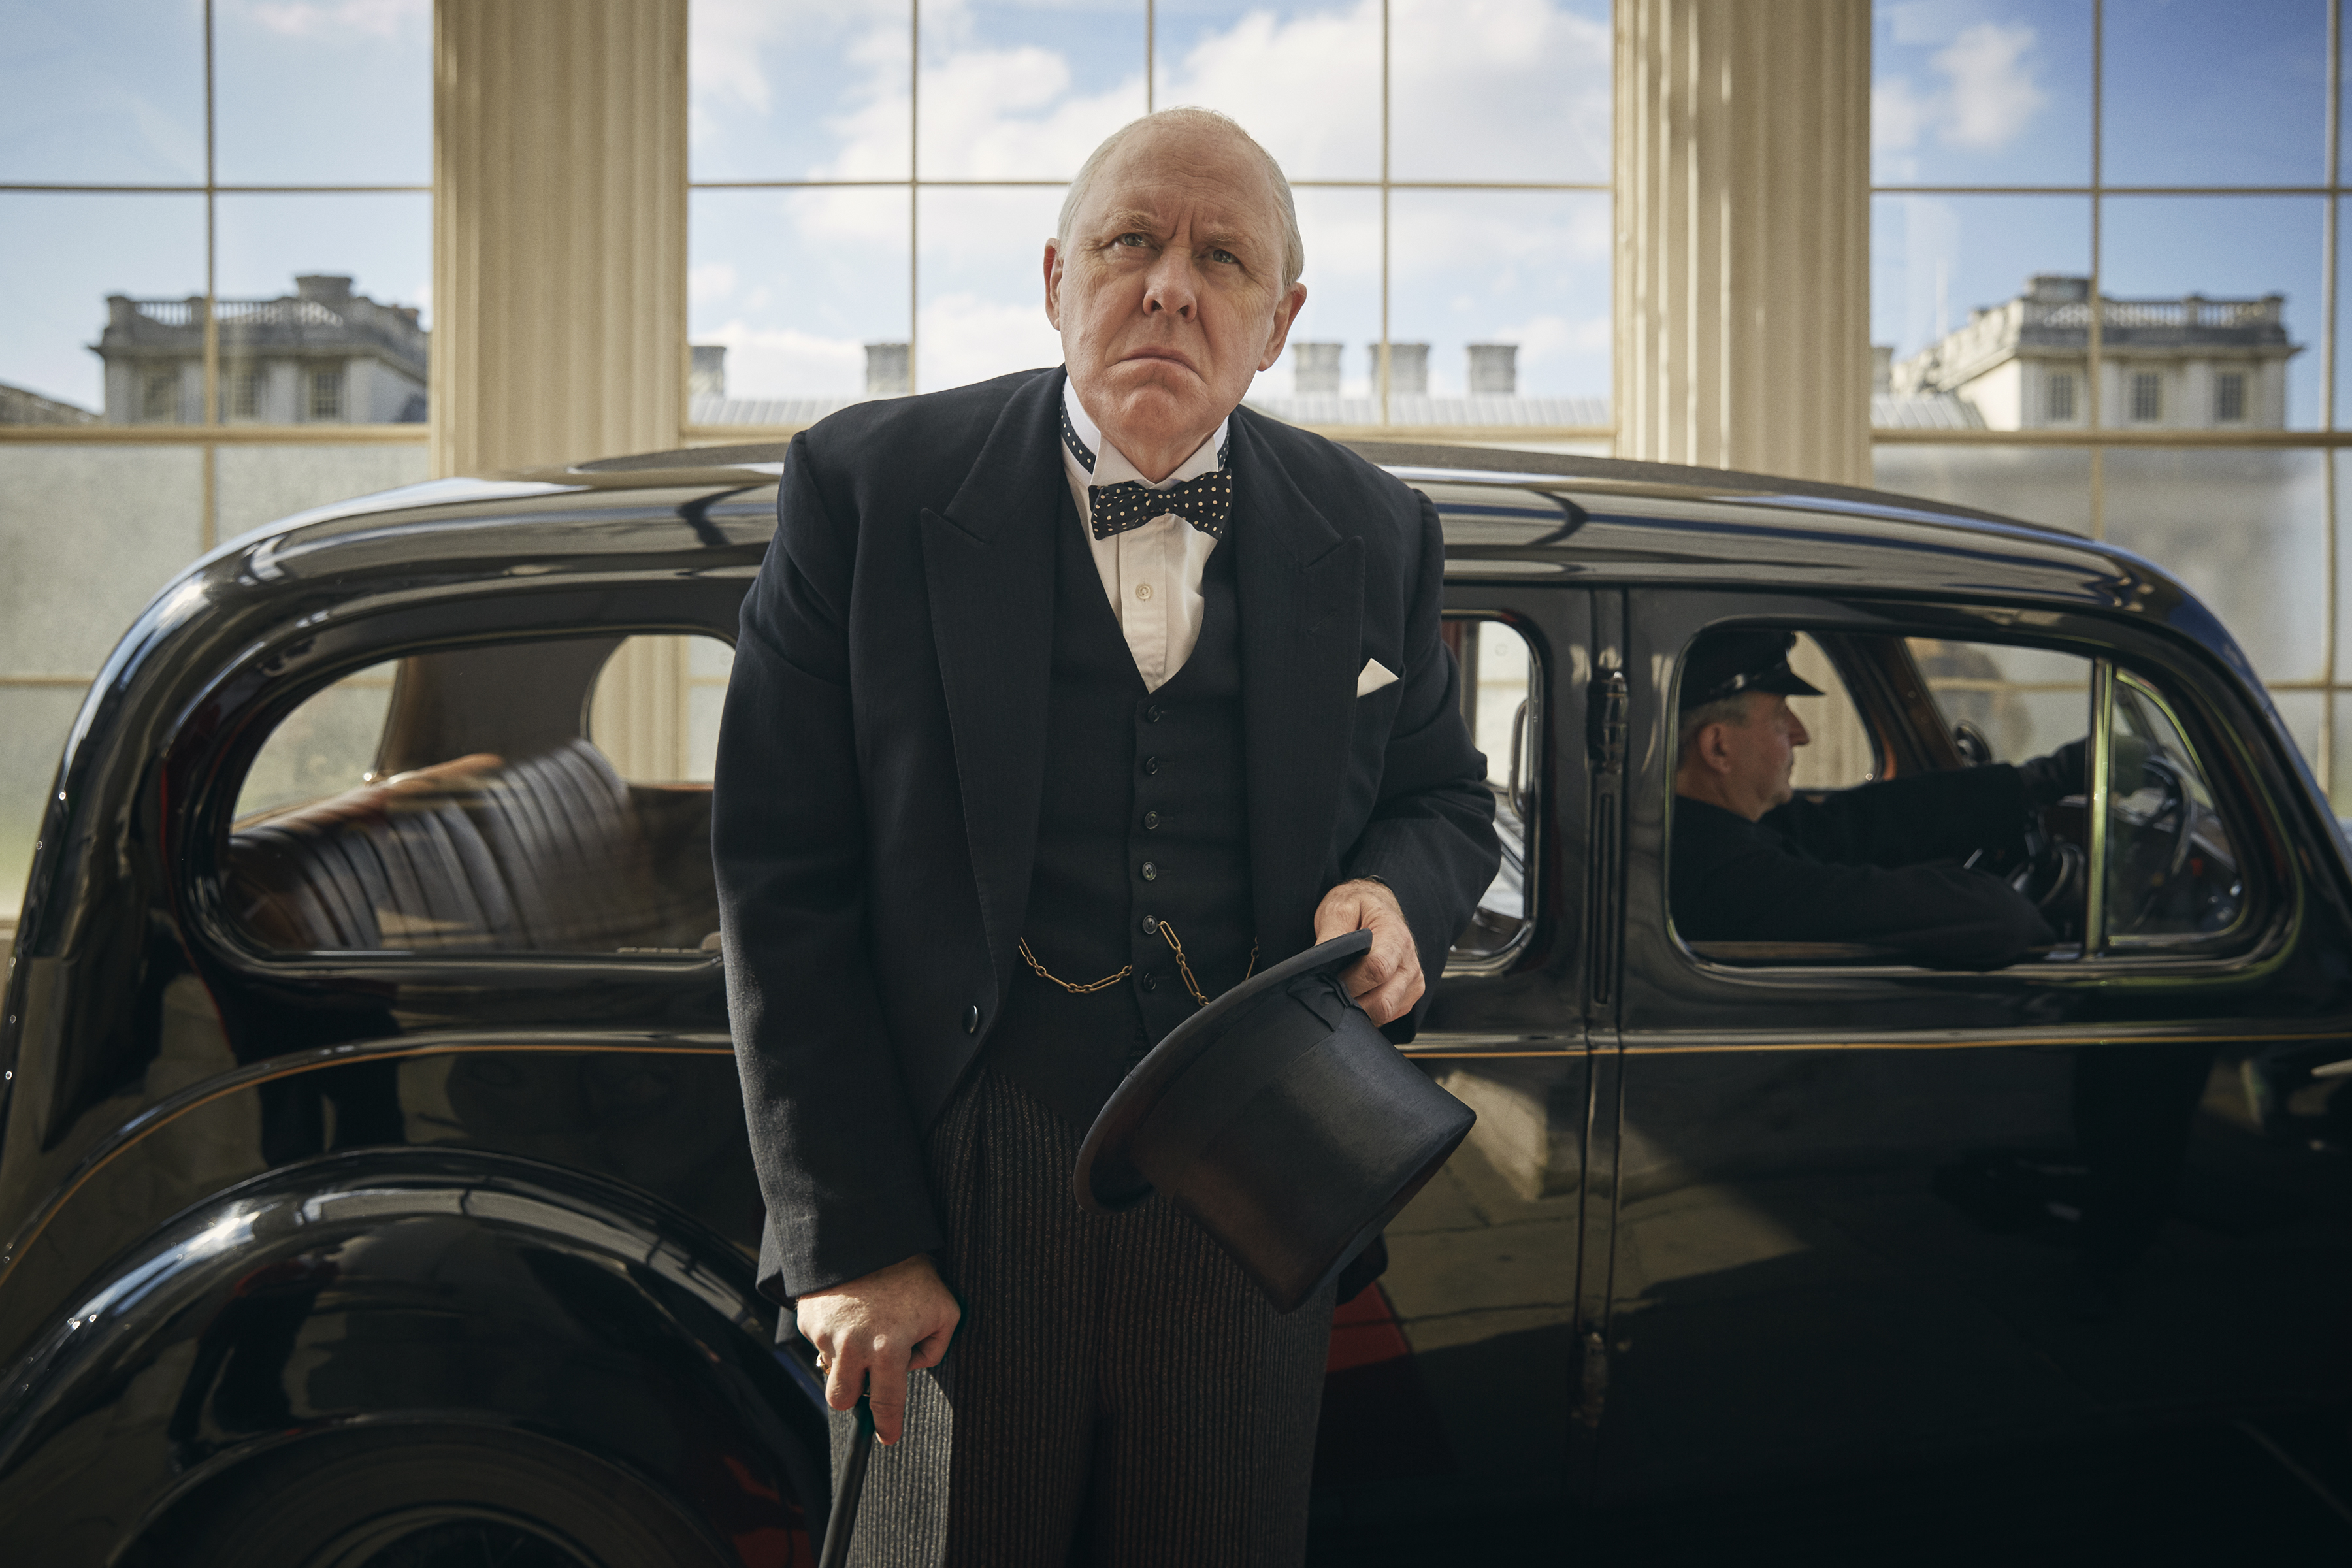 John Lithgow: Winston Churchill in The Crown | IndieWire